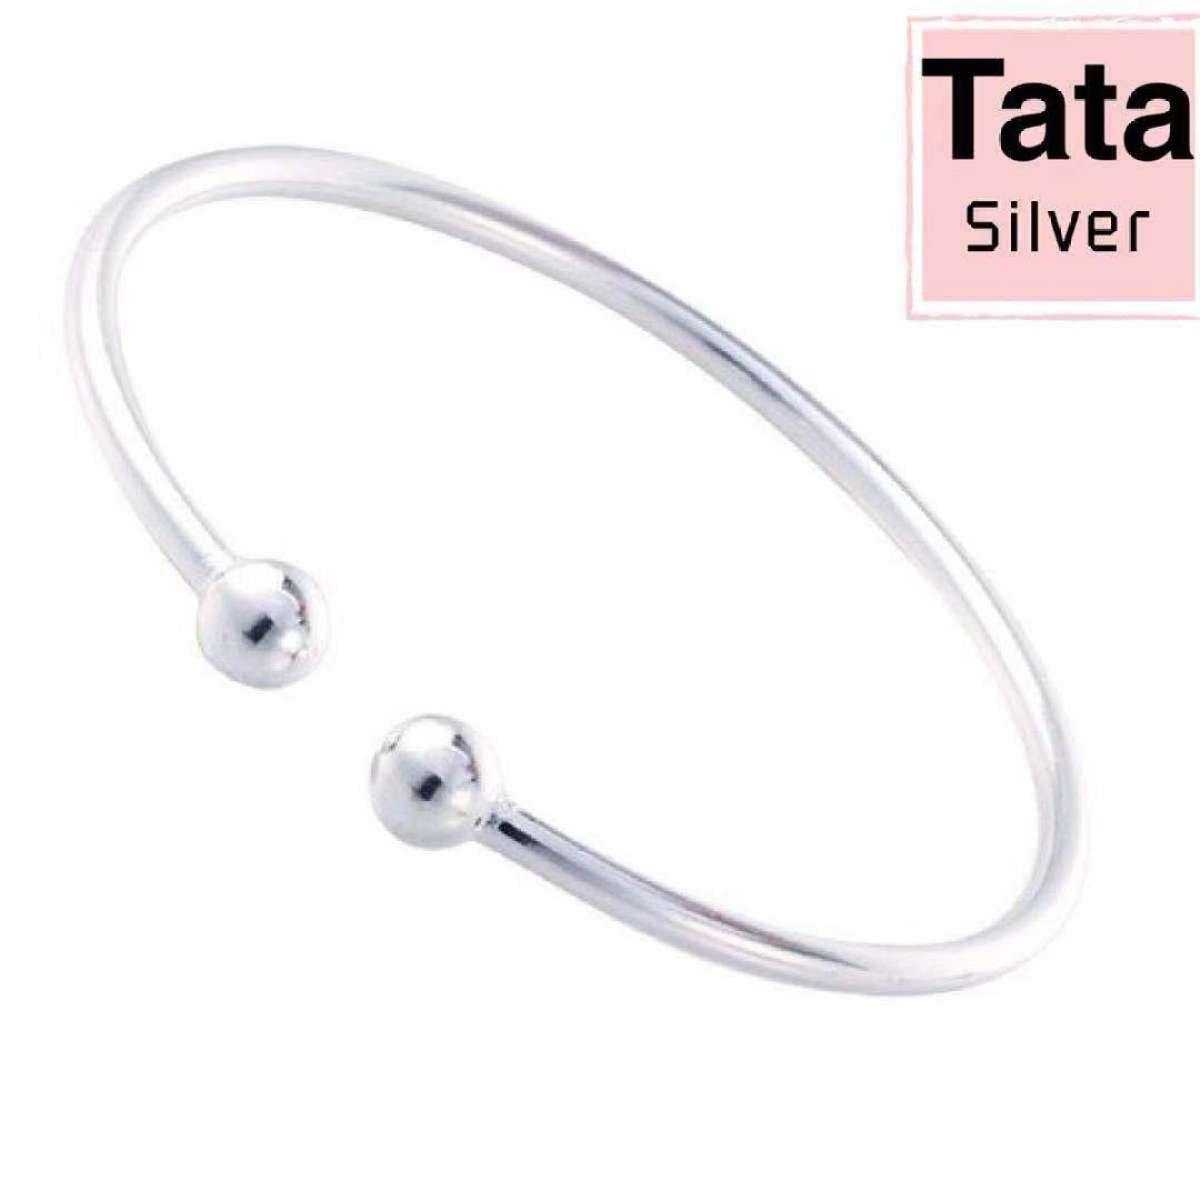 e915bed1ce0 Seoul Spring Fashion Silver Genuine 92.5% Italy Silver Bangle for ladies